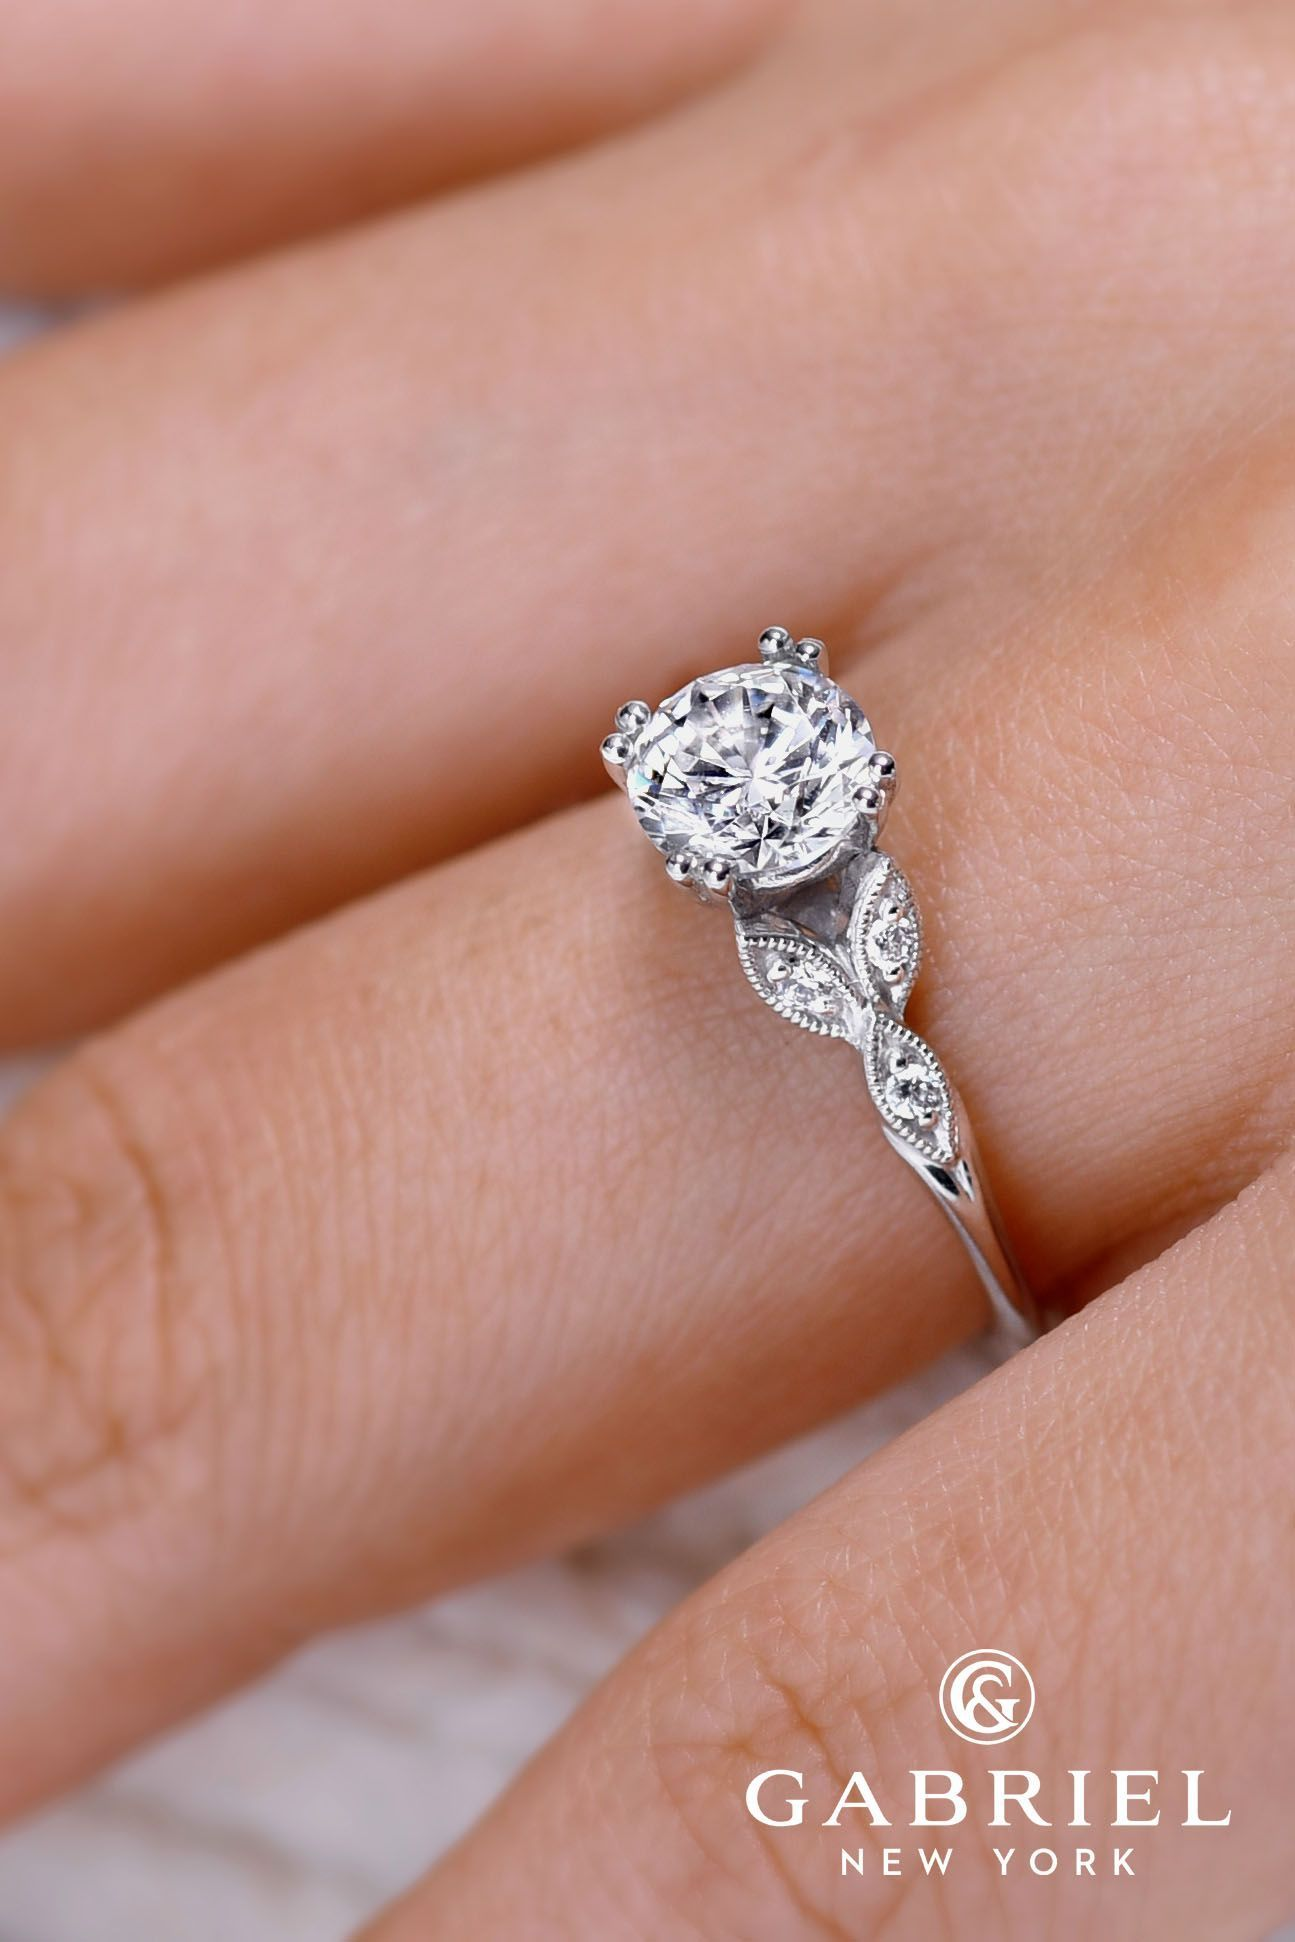 24 gabriel co engagement rings extraordinaire - Cubic Zirconia Wedding Rings That Look Real